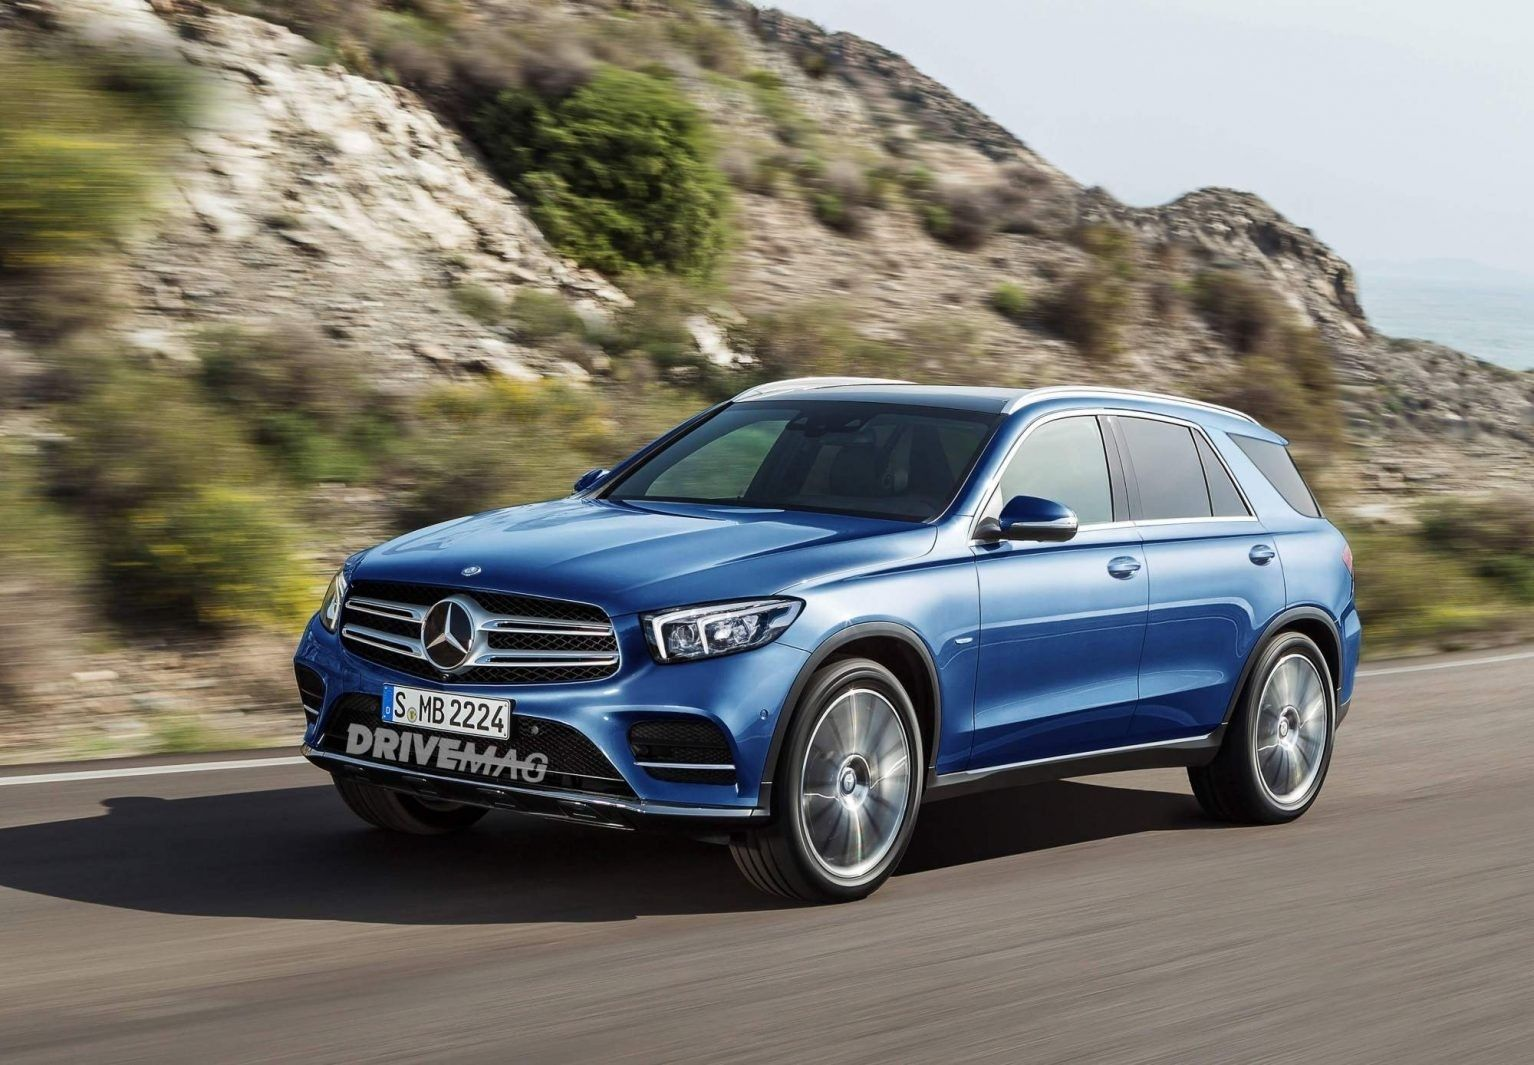 32+ Gle 400 coupe 2019 ideas in 2021